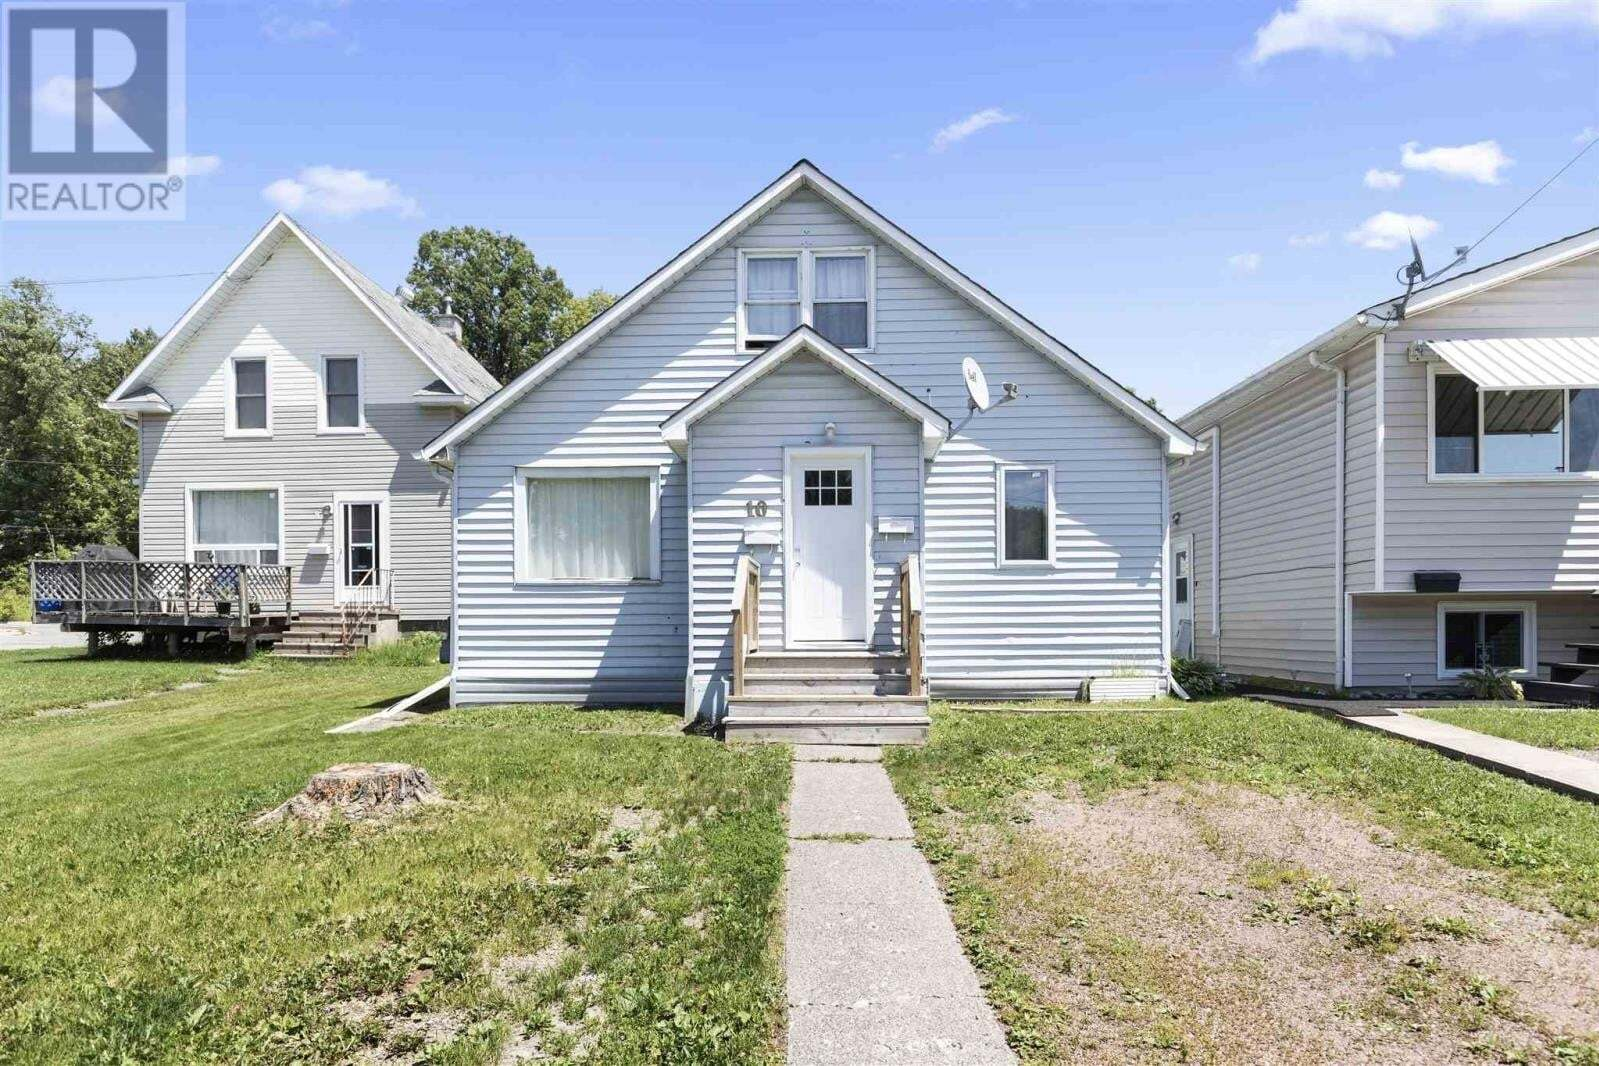 Townhouse for sale at 10 Grosvenor Ave Sault Ste. Marie Ontario - MLS: SM129036